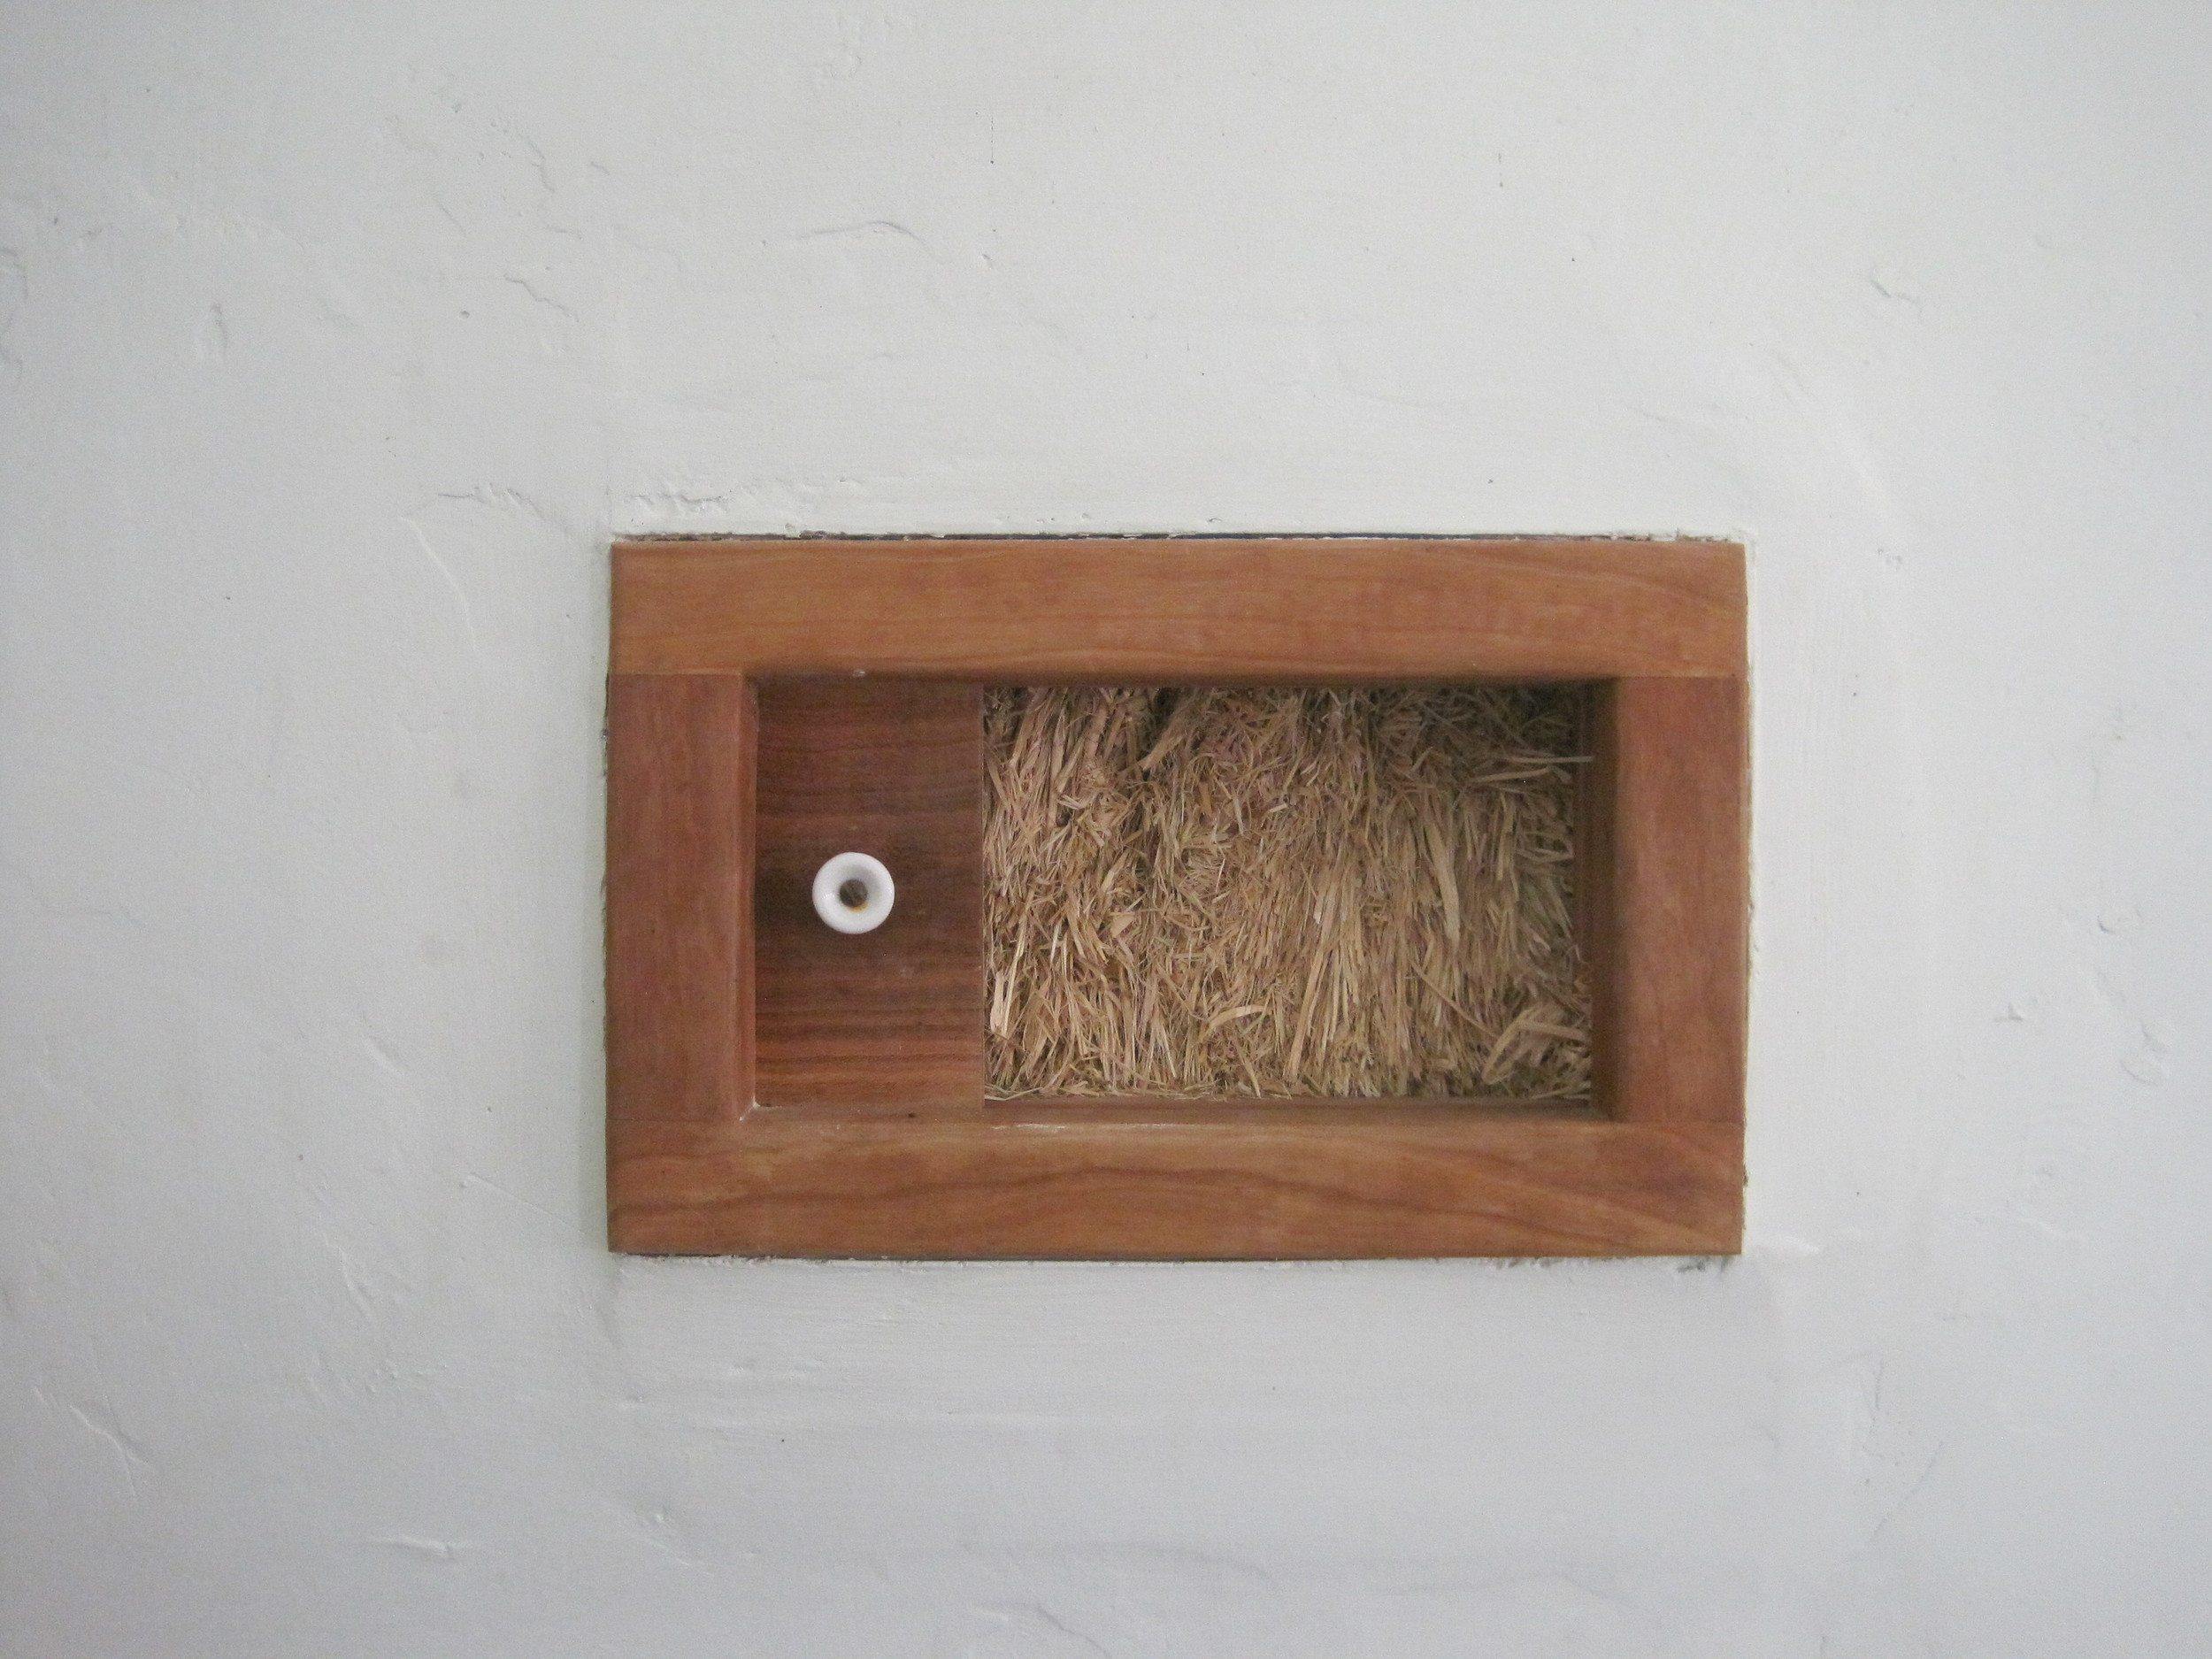 Truth window in the Straw Bale walls